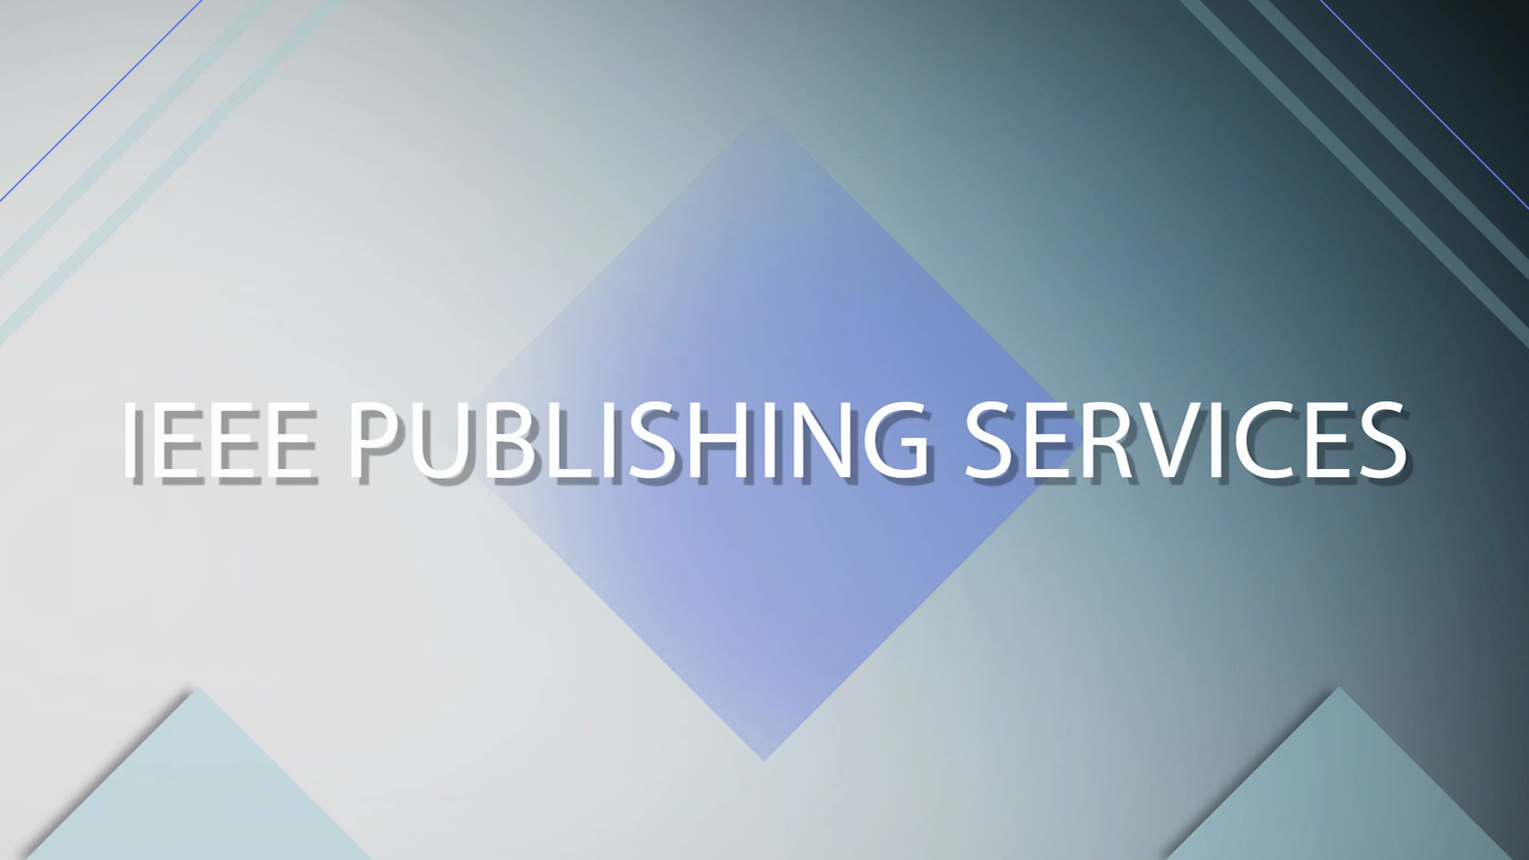 Welcome to IEEE Publishing Services